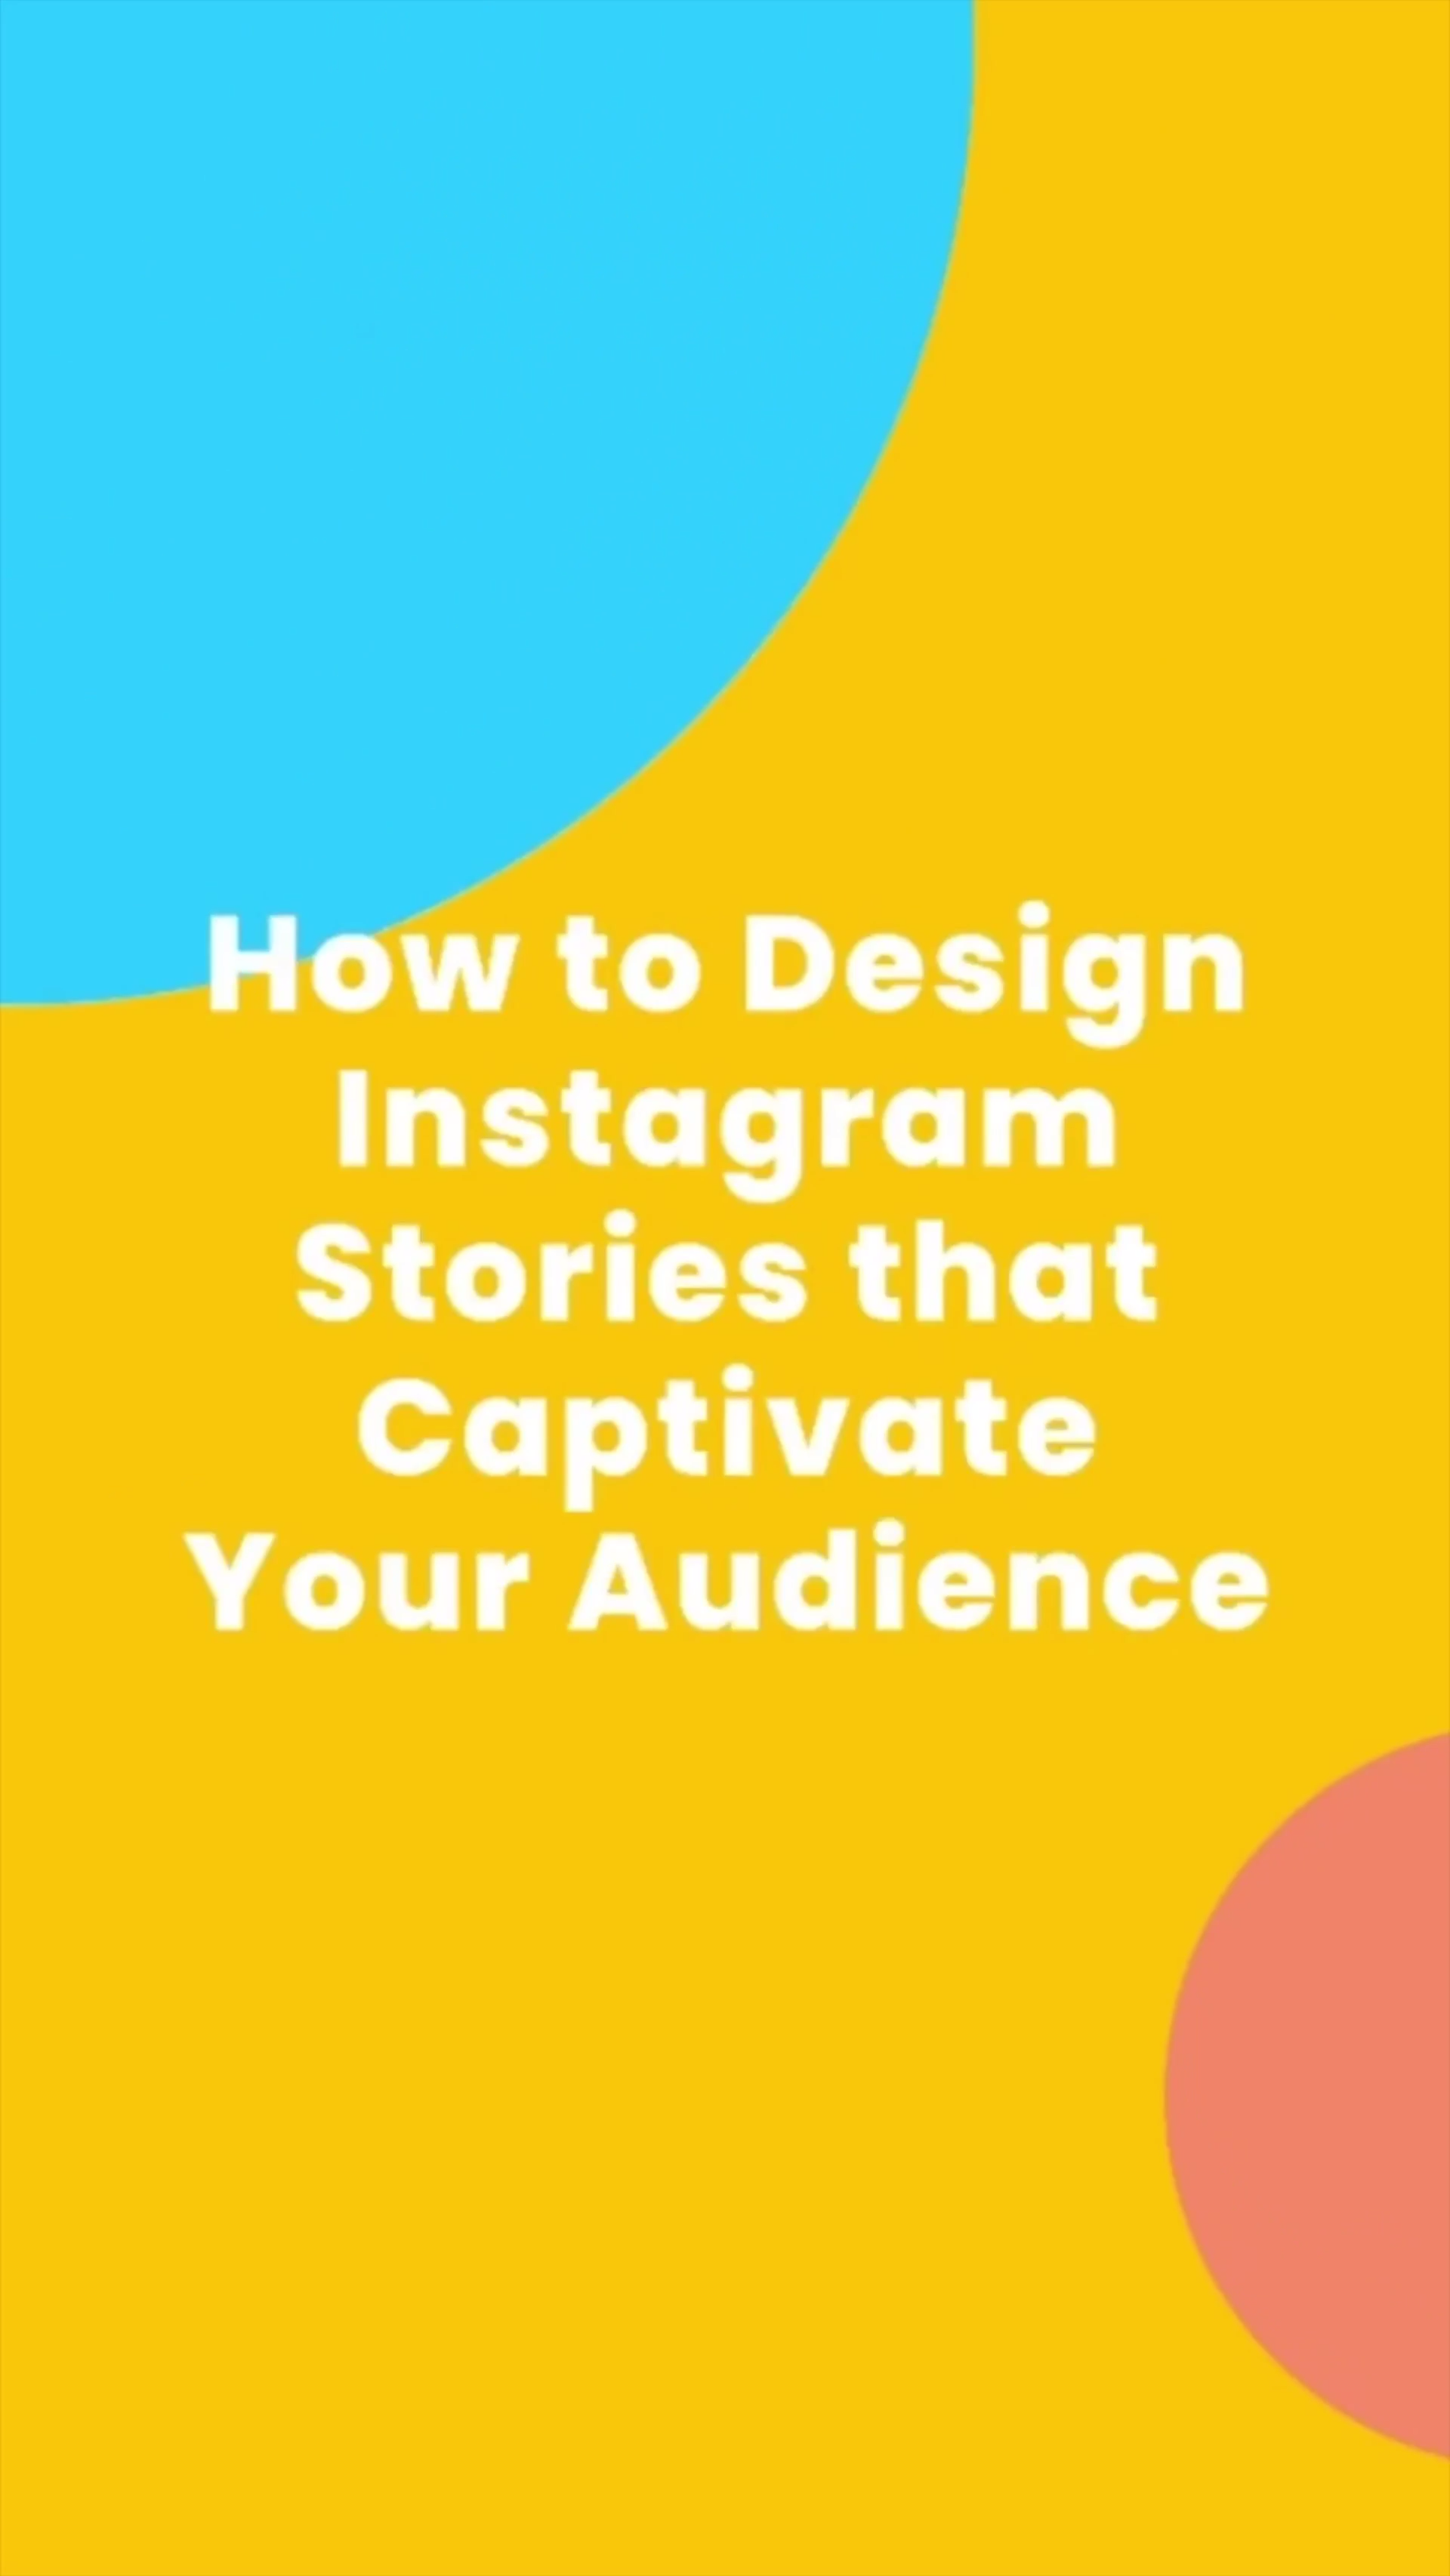 How to Design Instagram Stories: Free Video Tutorial! | Later Blog